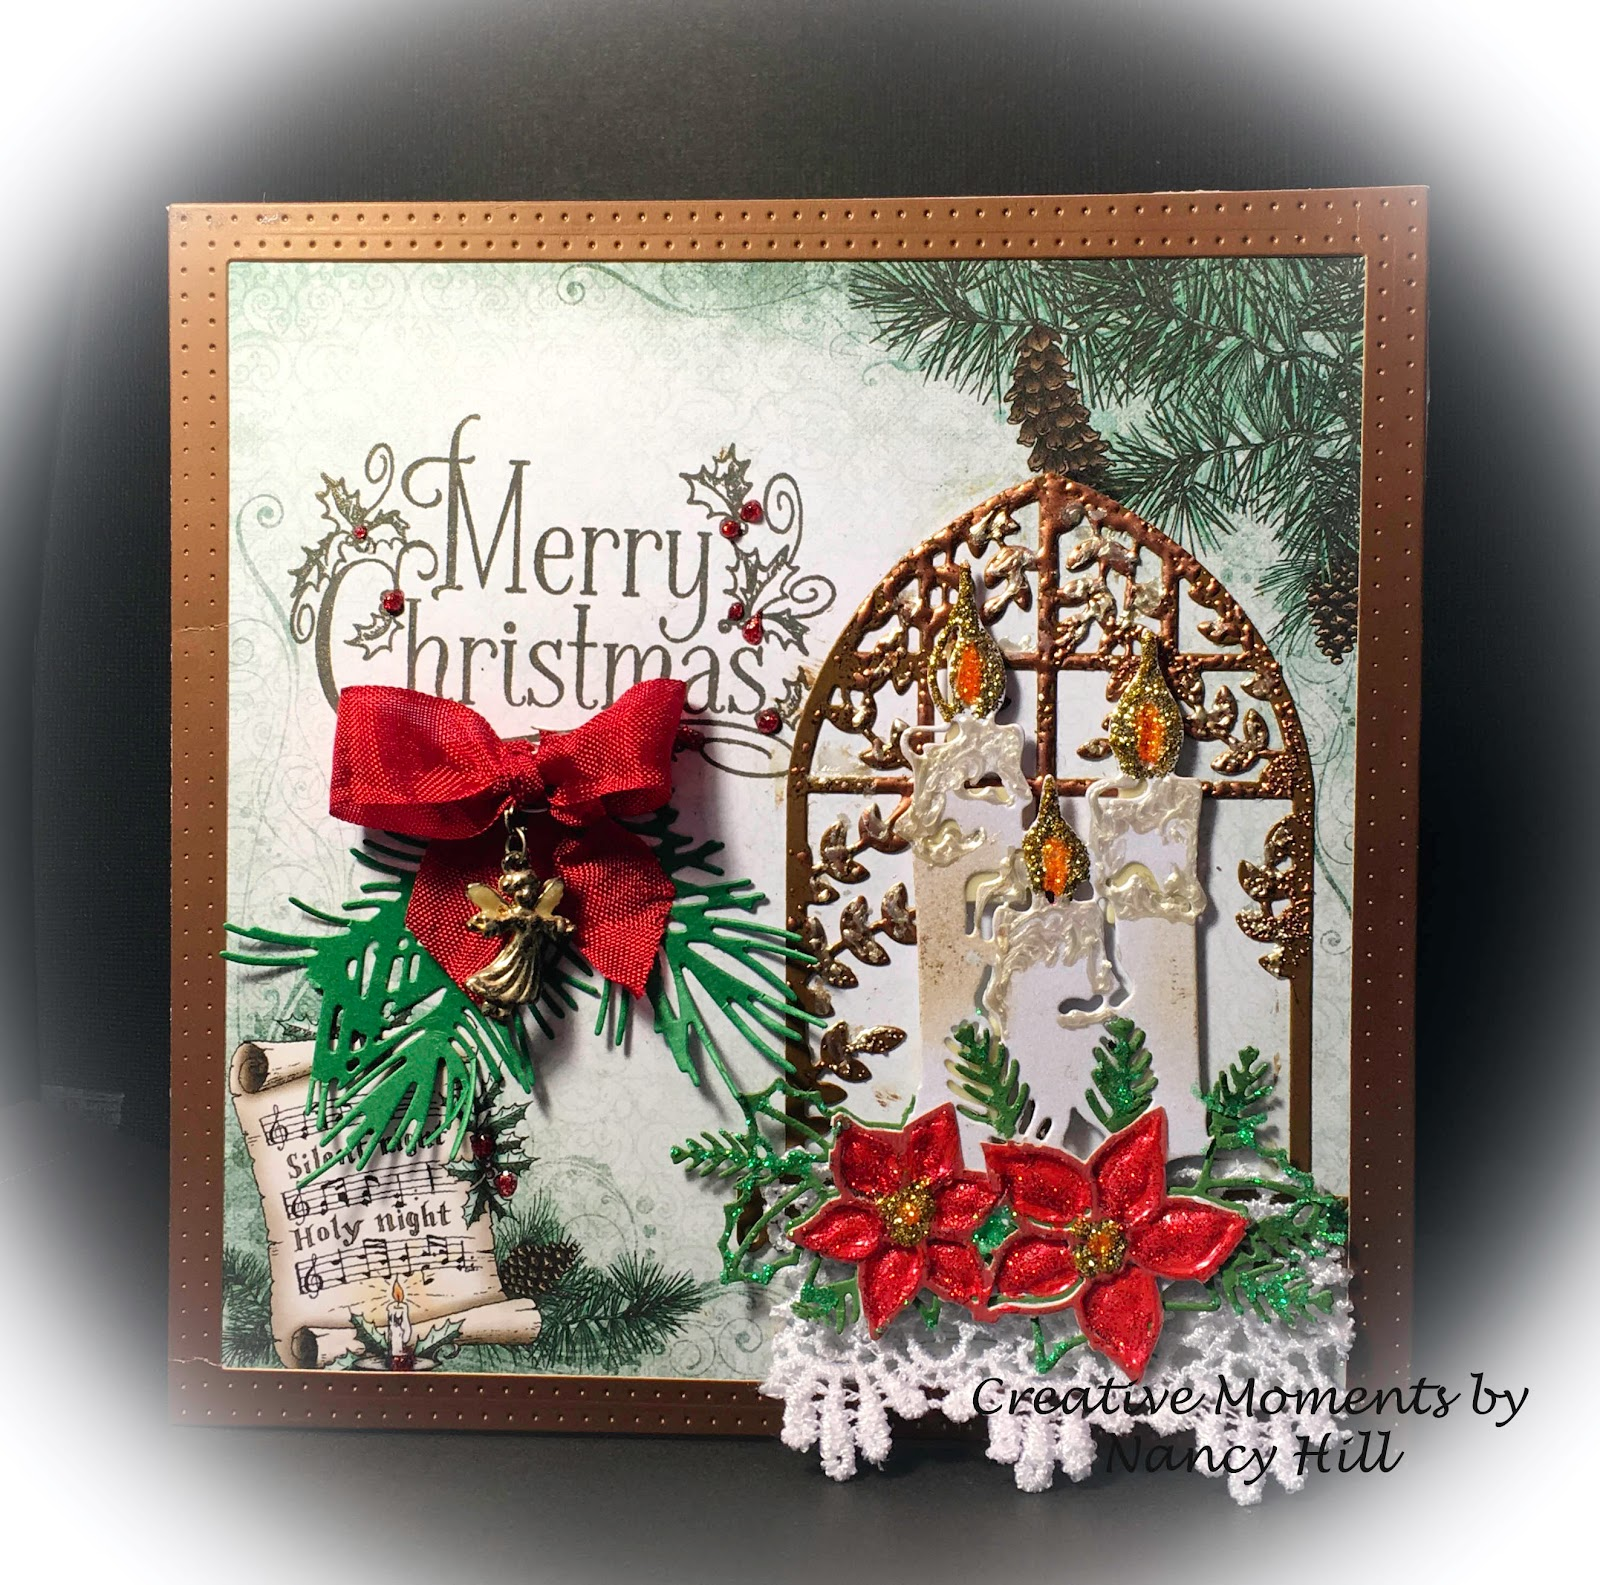 Creative Moments by Nancy Hill: Silent Night - Holy Night Christmas card